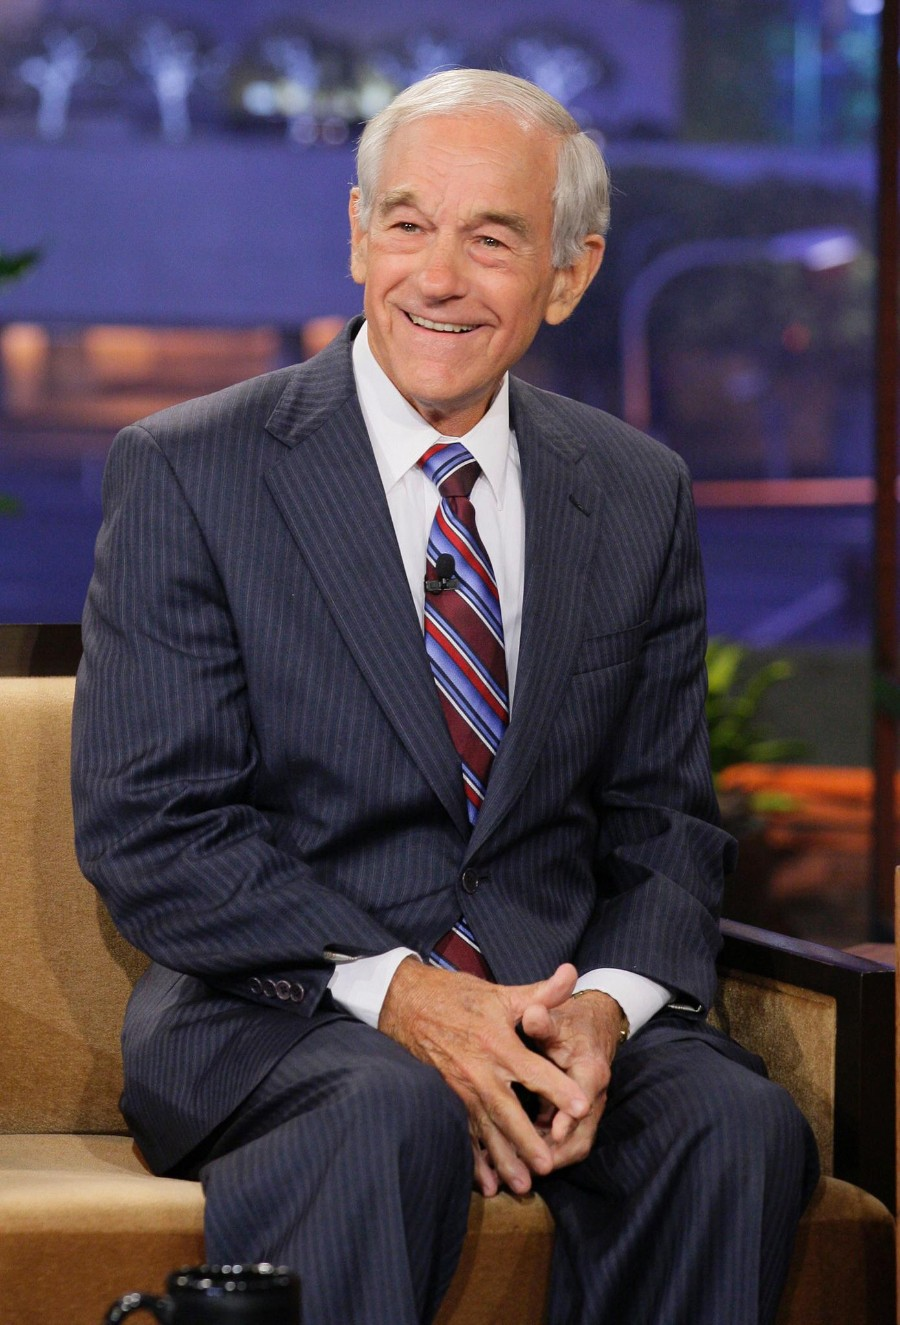 Ron Paul to Make Acting Debut in Part 3 of 'Atlas Shrugged'